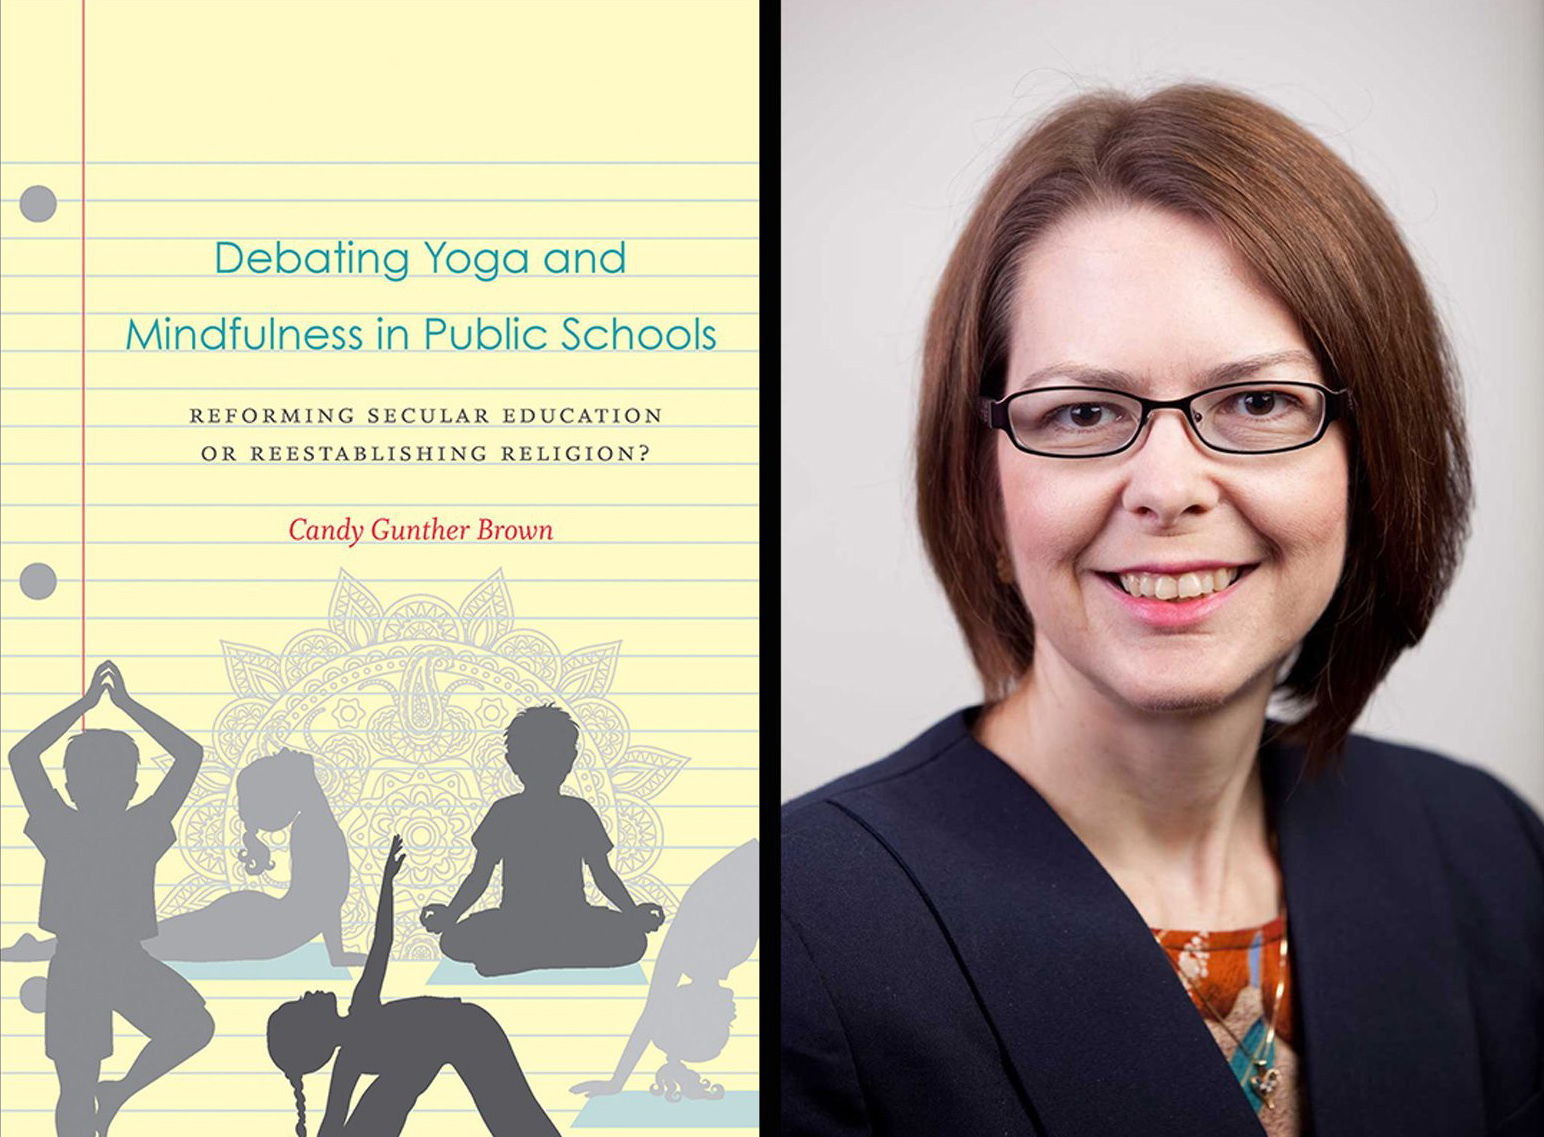 """""""Debating Yoga and Mindfulness in Public Schools: Reforming Secular Education or Reestablishing Religion?"""" and author Candy Gunther Brown. Courtesy images"""